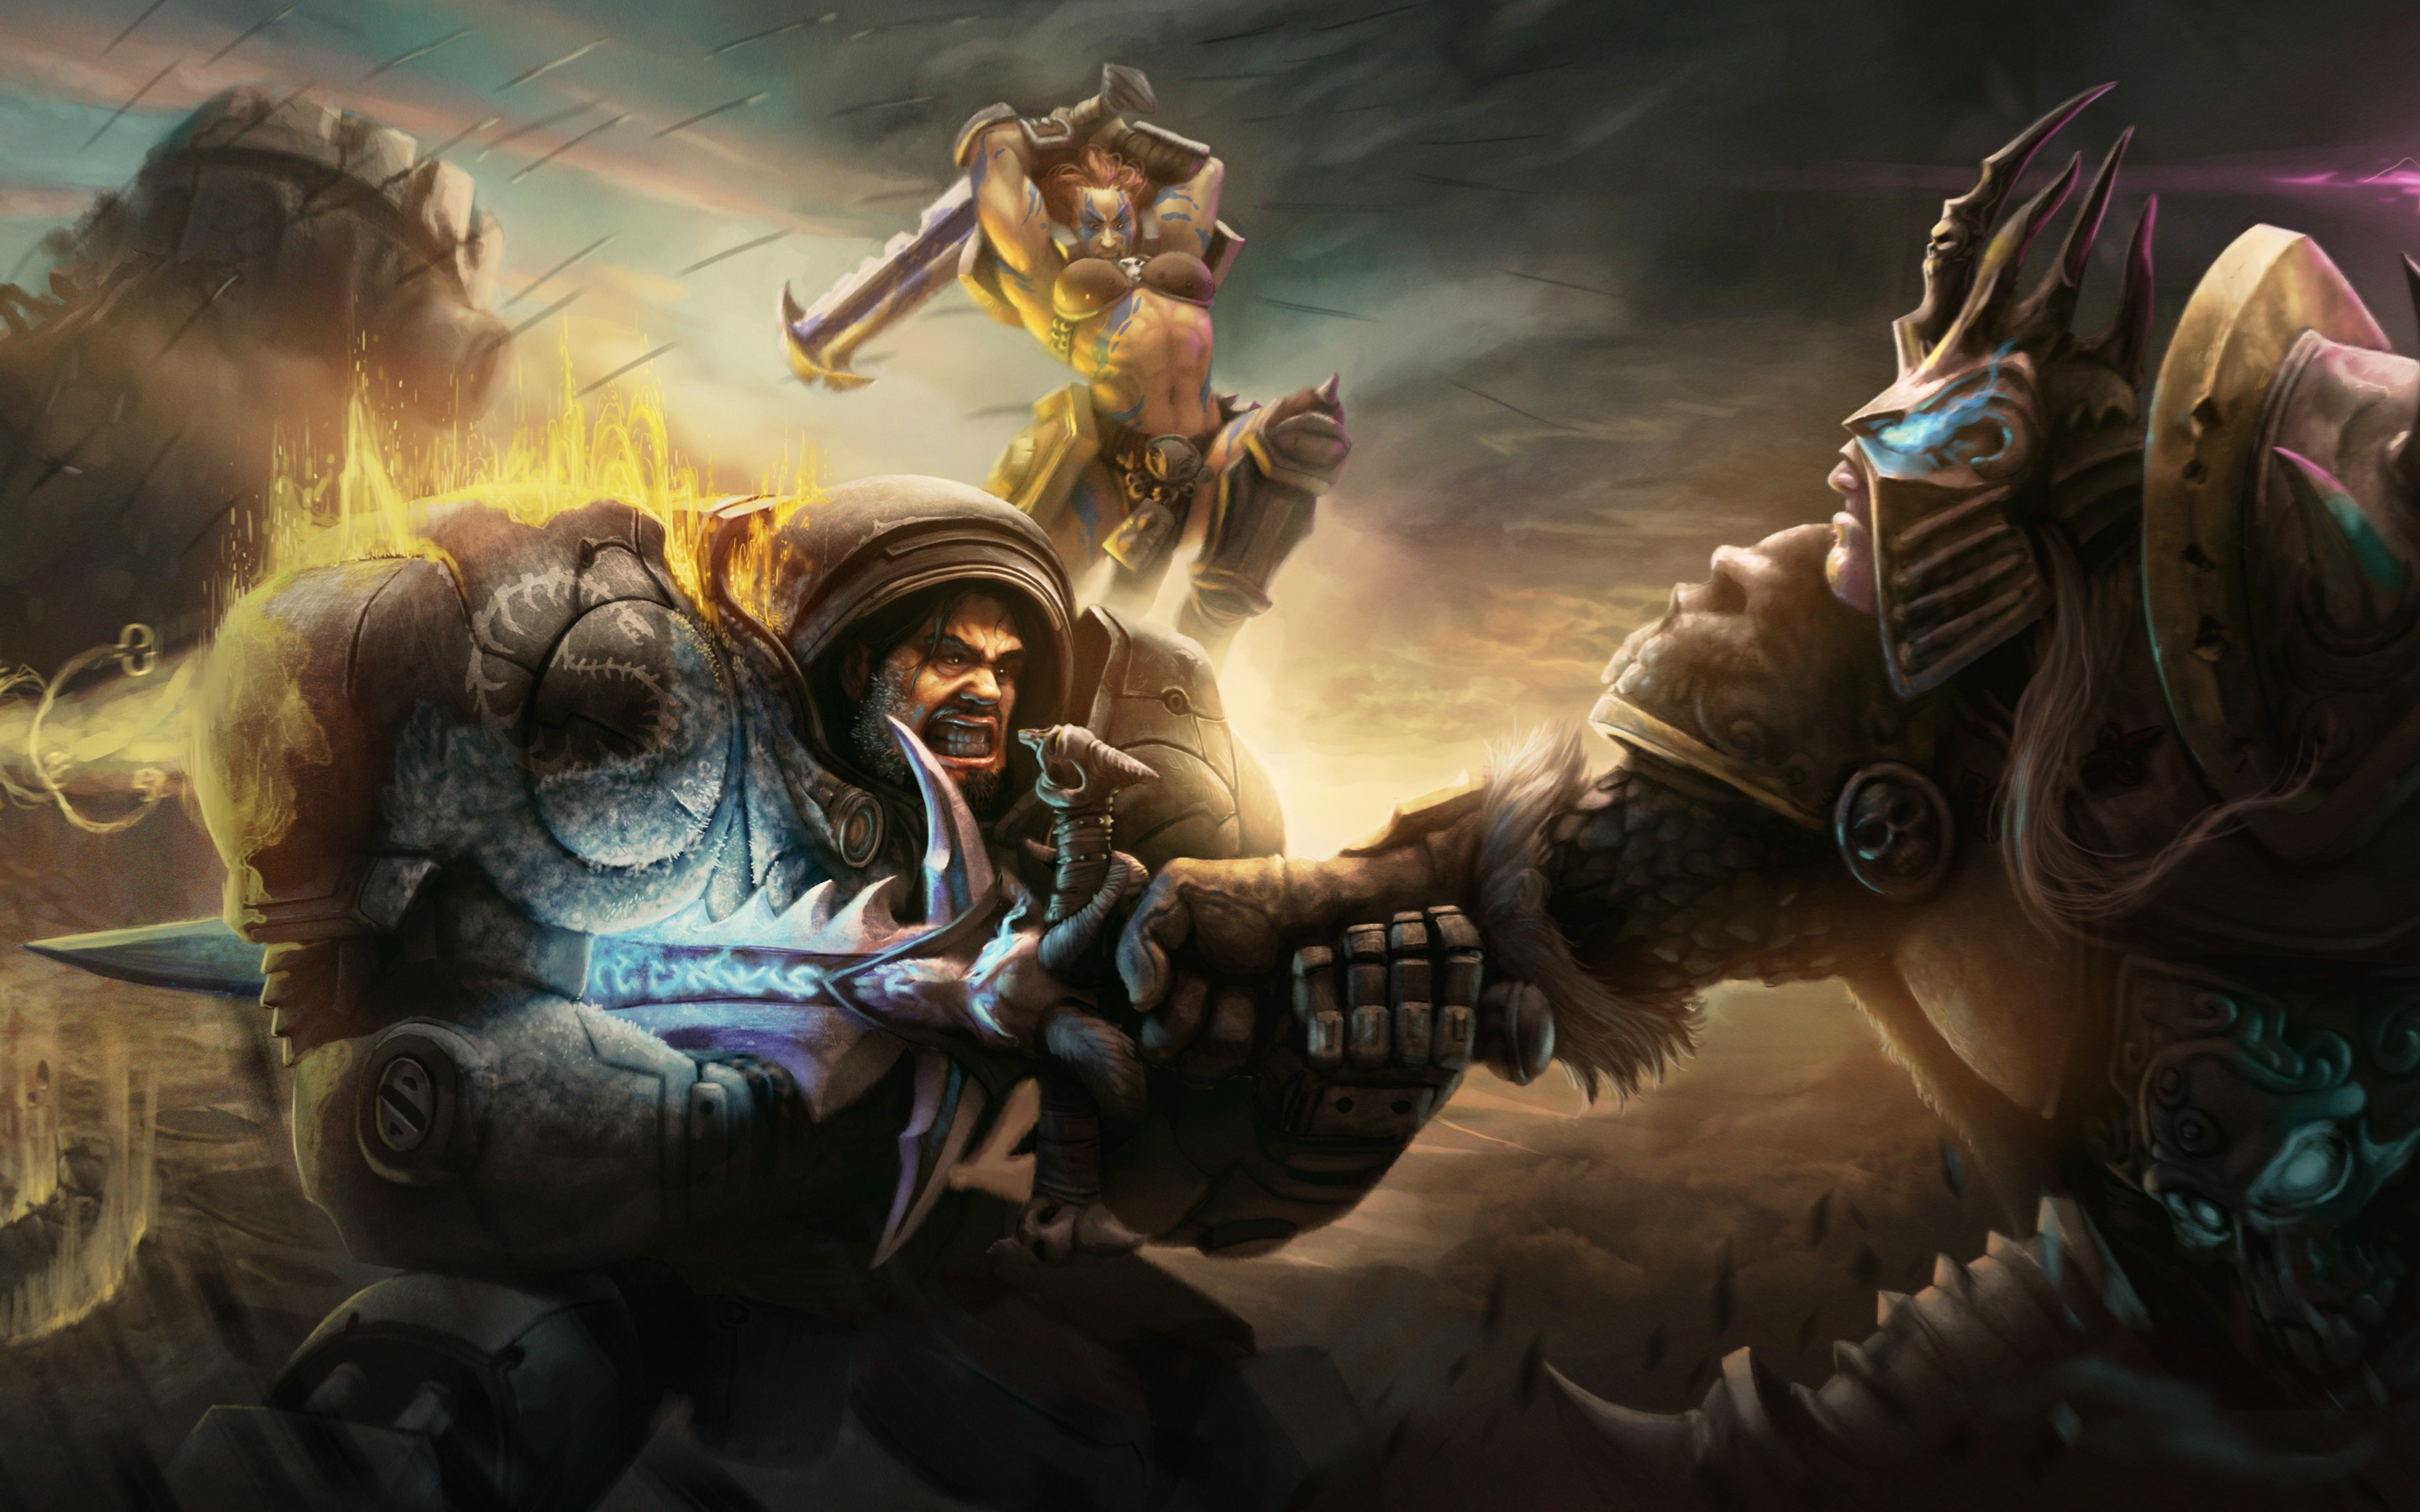 Heroes Of The Storm Battle Raynor Sonya And Arthas Click To View